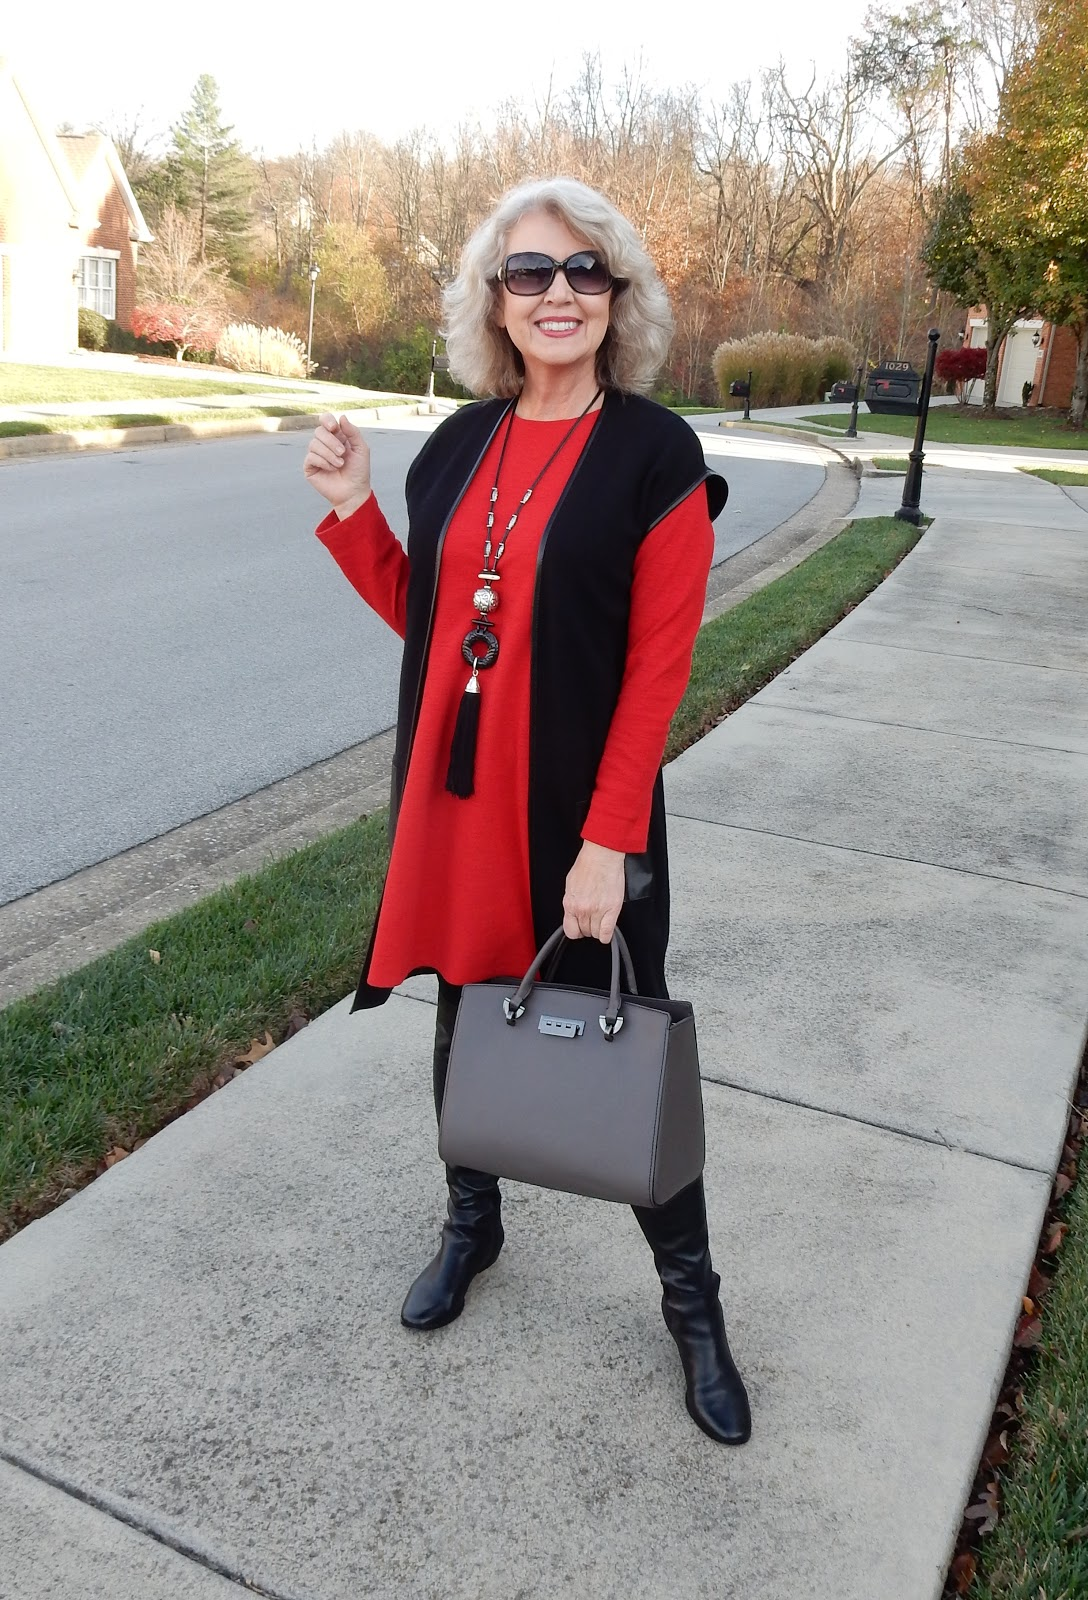 dress not for success fifty years Ageless chic + age appropriate style guide to be chic at any age with fashion stylist tips on how to not look old (or too young) and dress for any age focusonstyle covers all the basics of what it means to maintain your effortless style at any age.